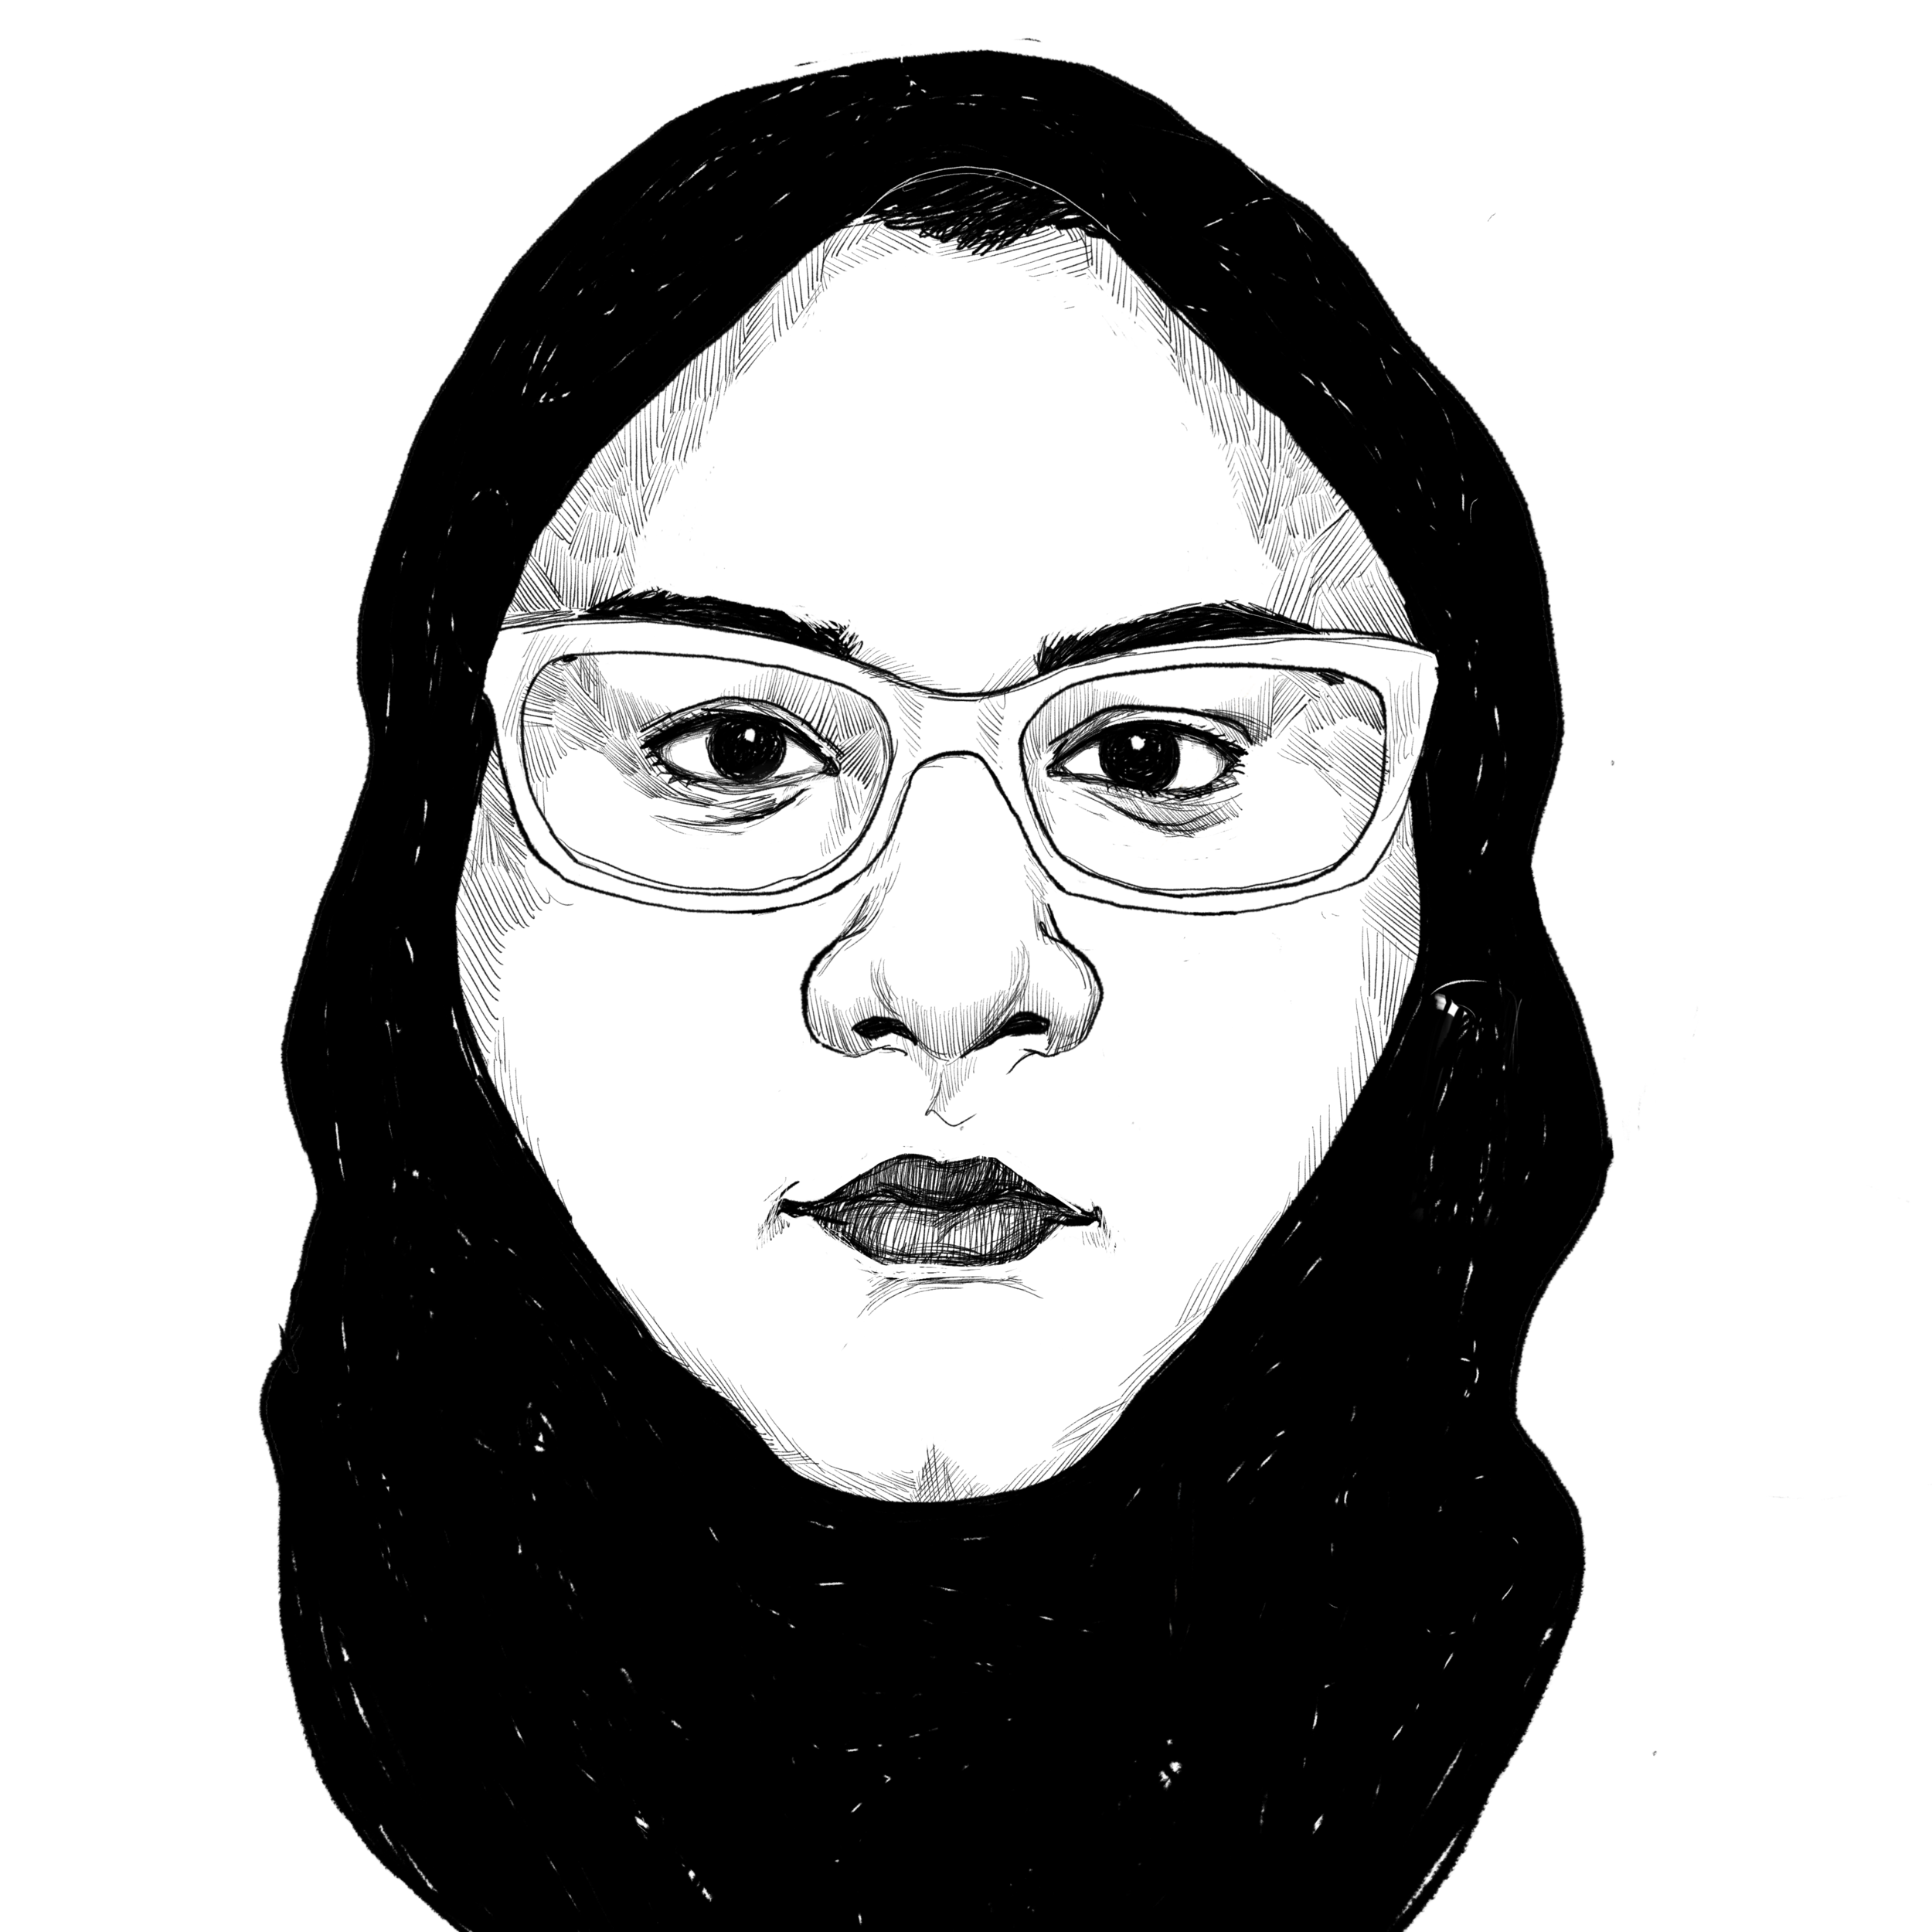 DEENA RASHEDEDITOR - Deena completed her Bachelor's in International Studies in 2015, with a very dodgy specialisation in Culture & Society, and an even dodgier minor in English Literature. She is currently in the process of researching parts of her Pakistani